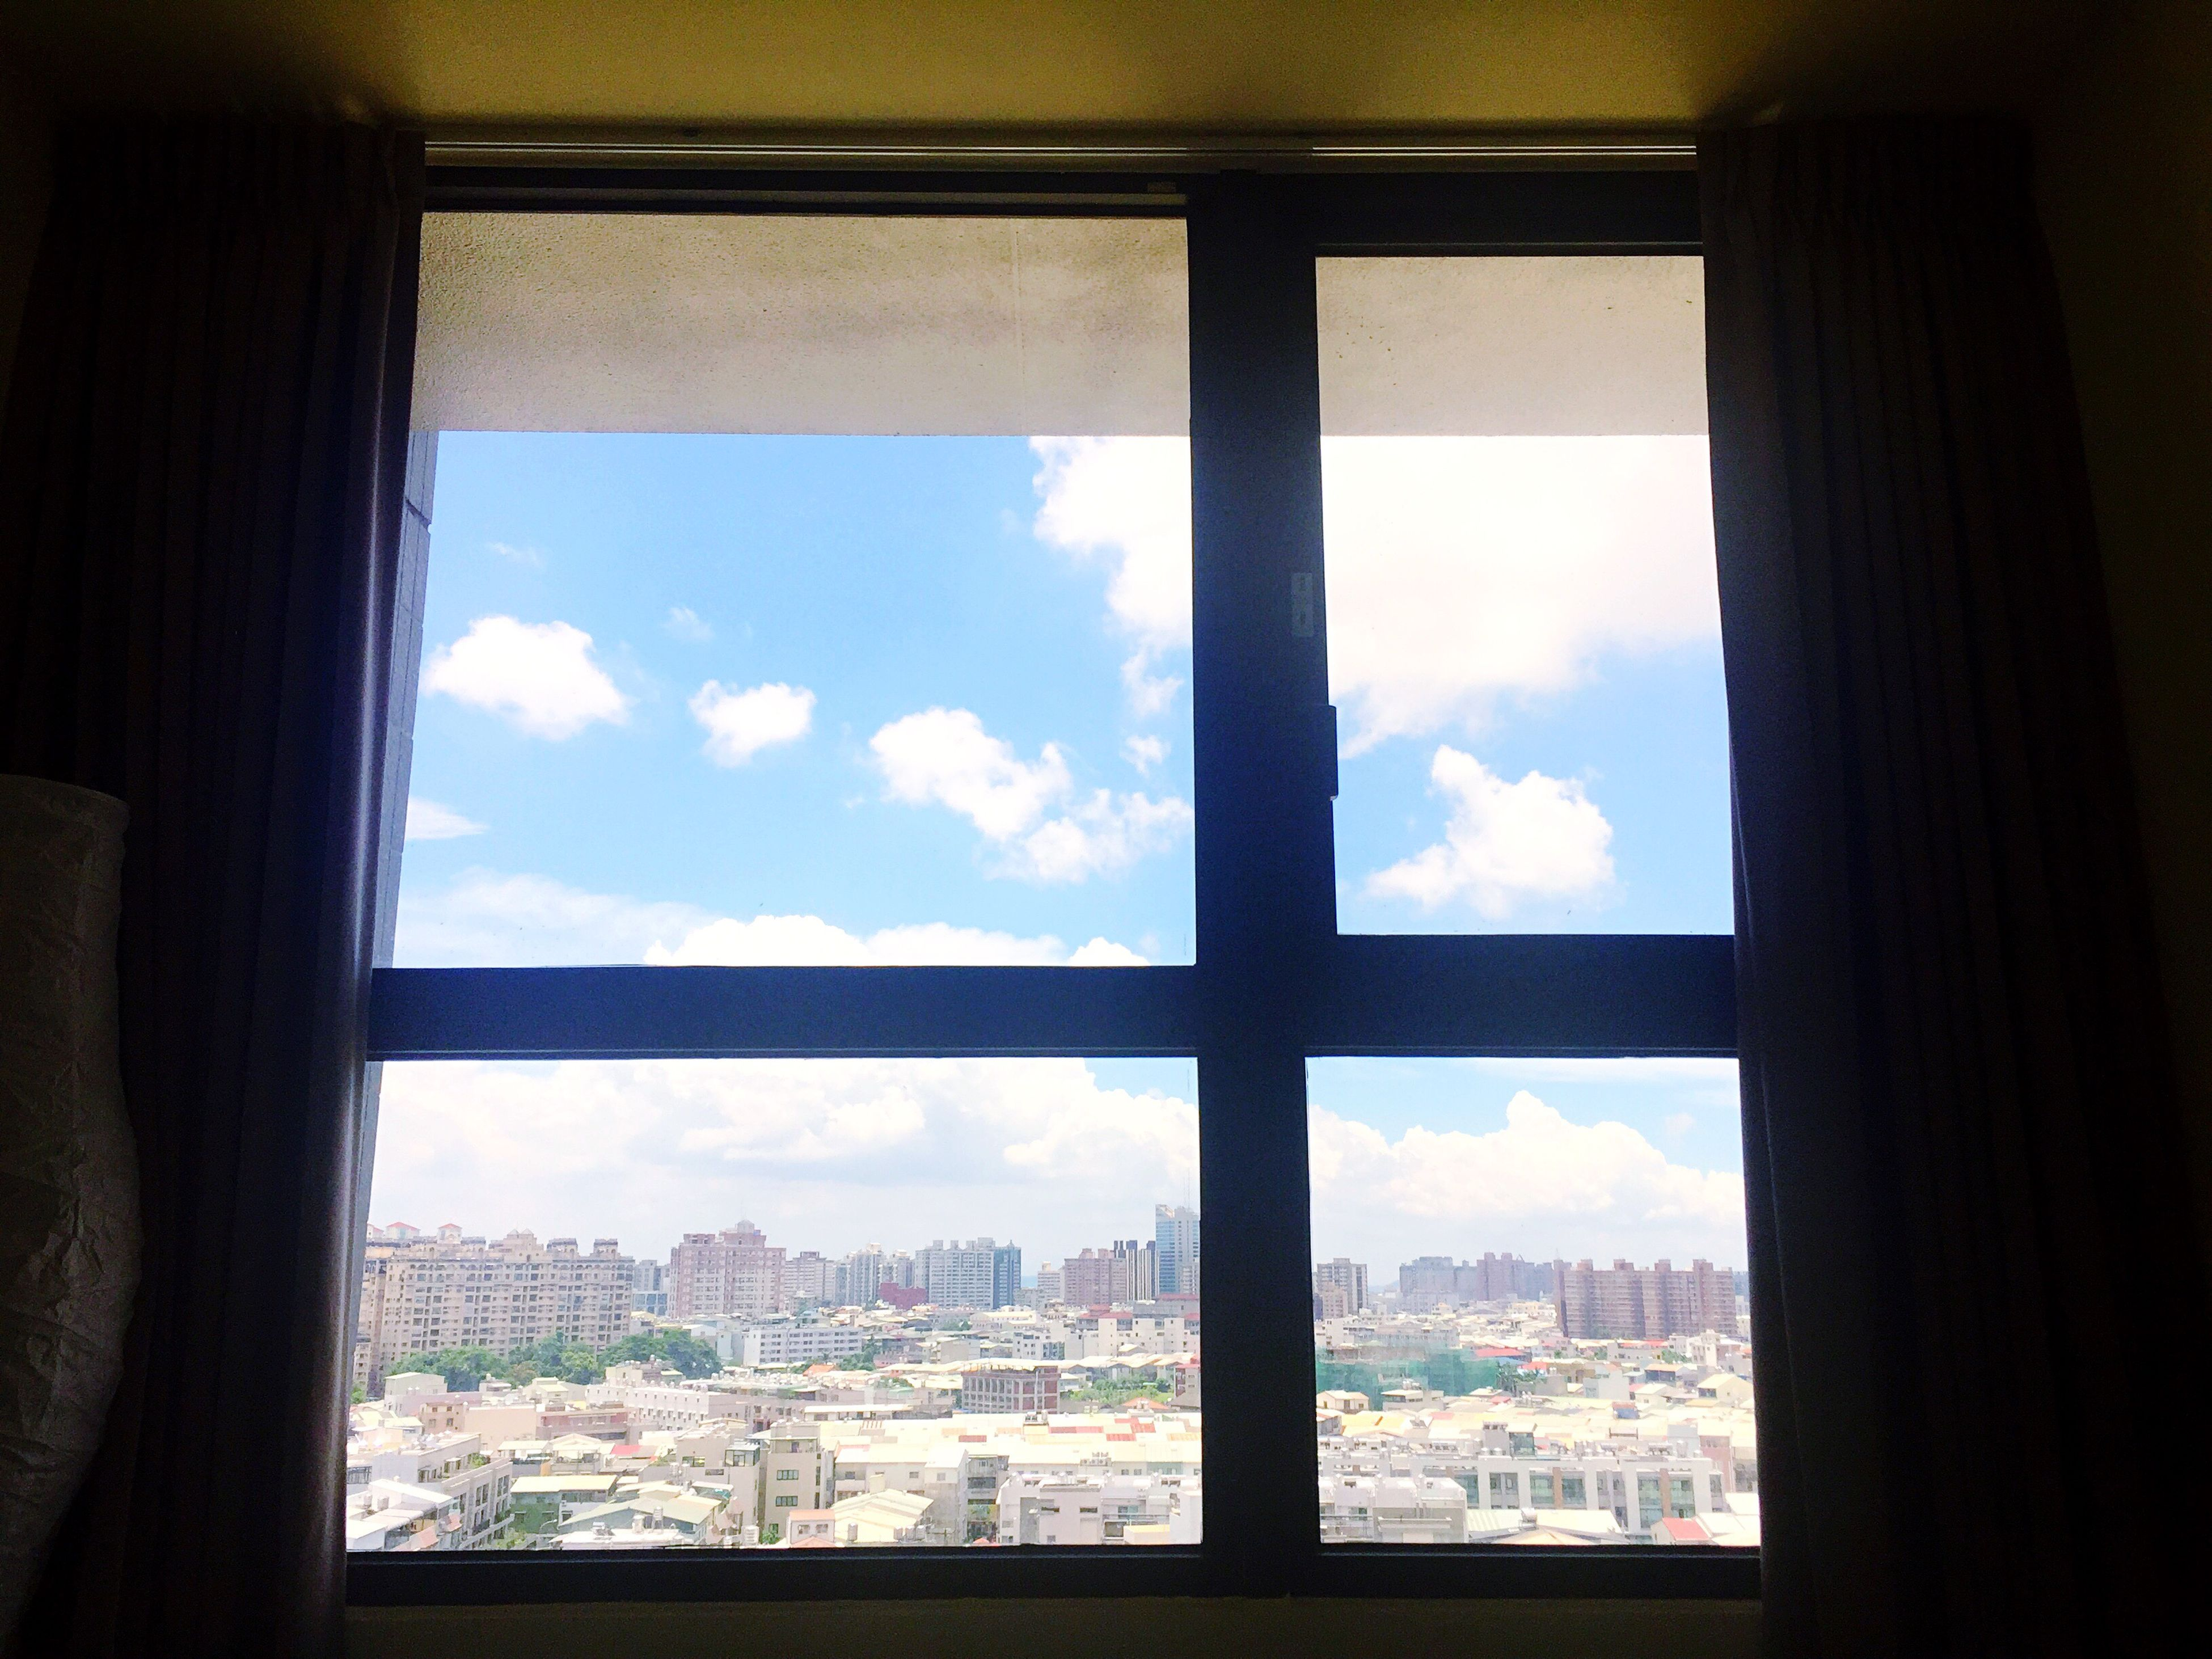 window, indoors, day, sky, architecture, looking through window, cloud - sky, built structure, no people, nature, cityscape